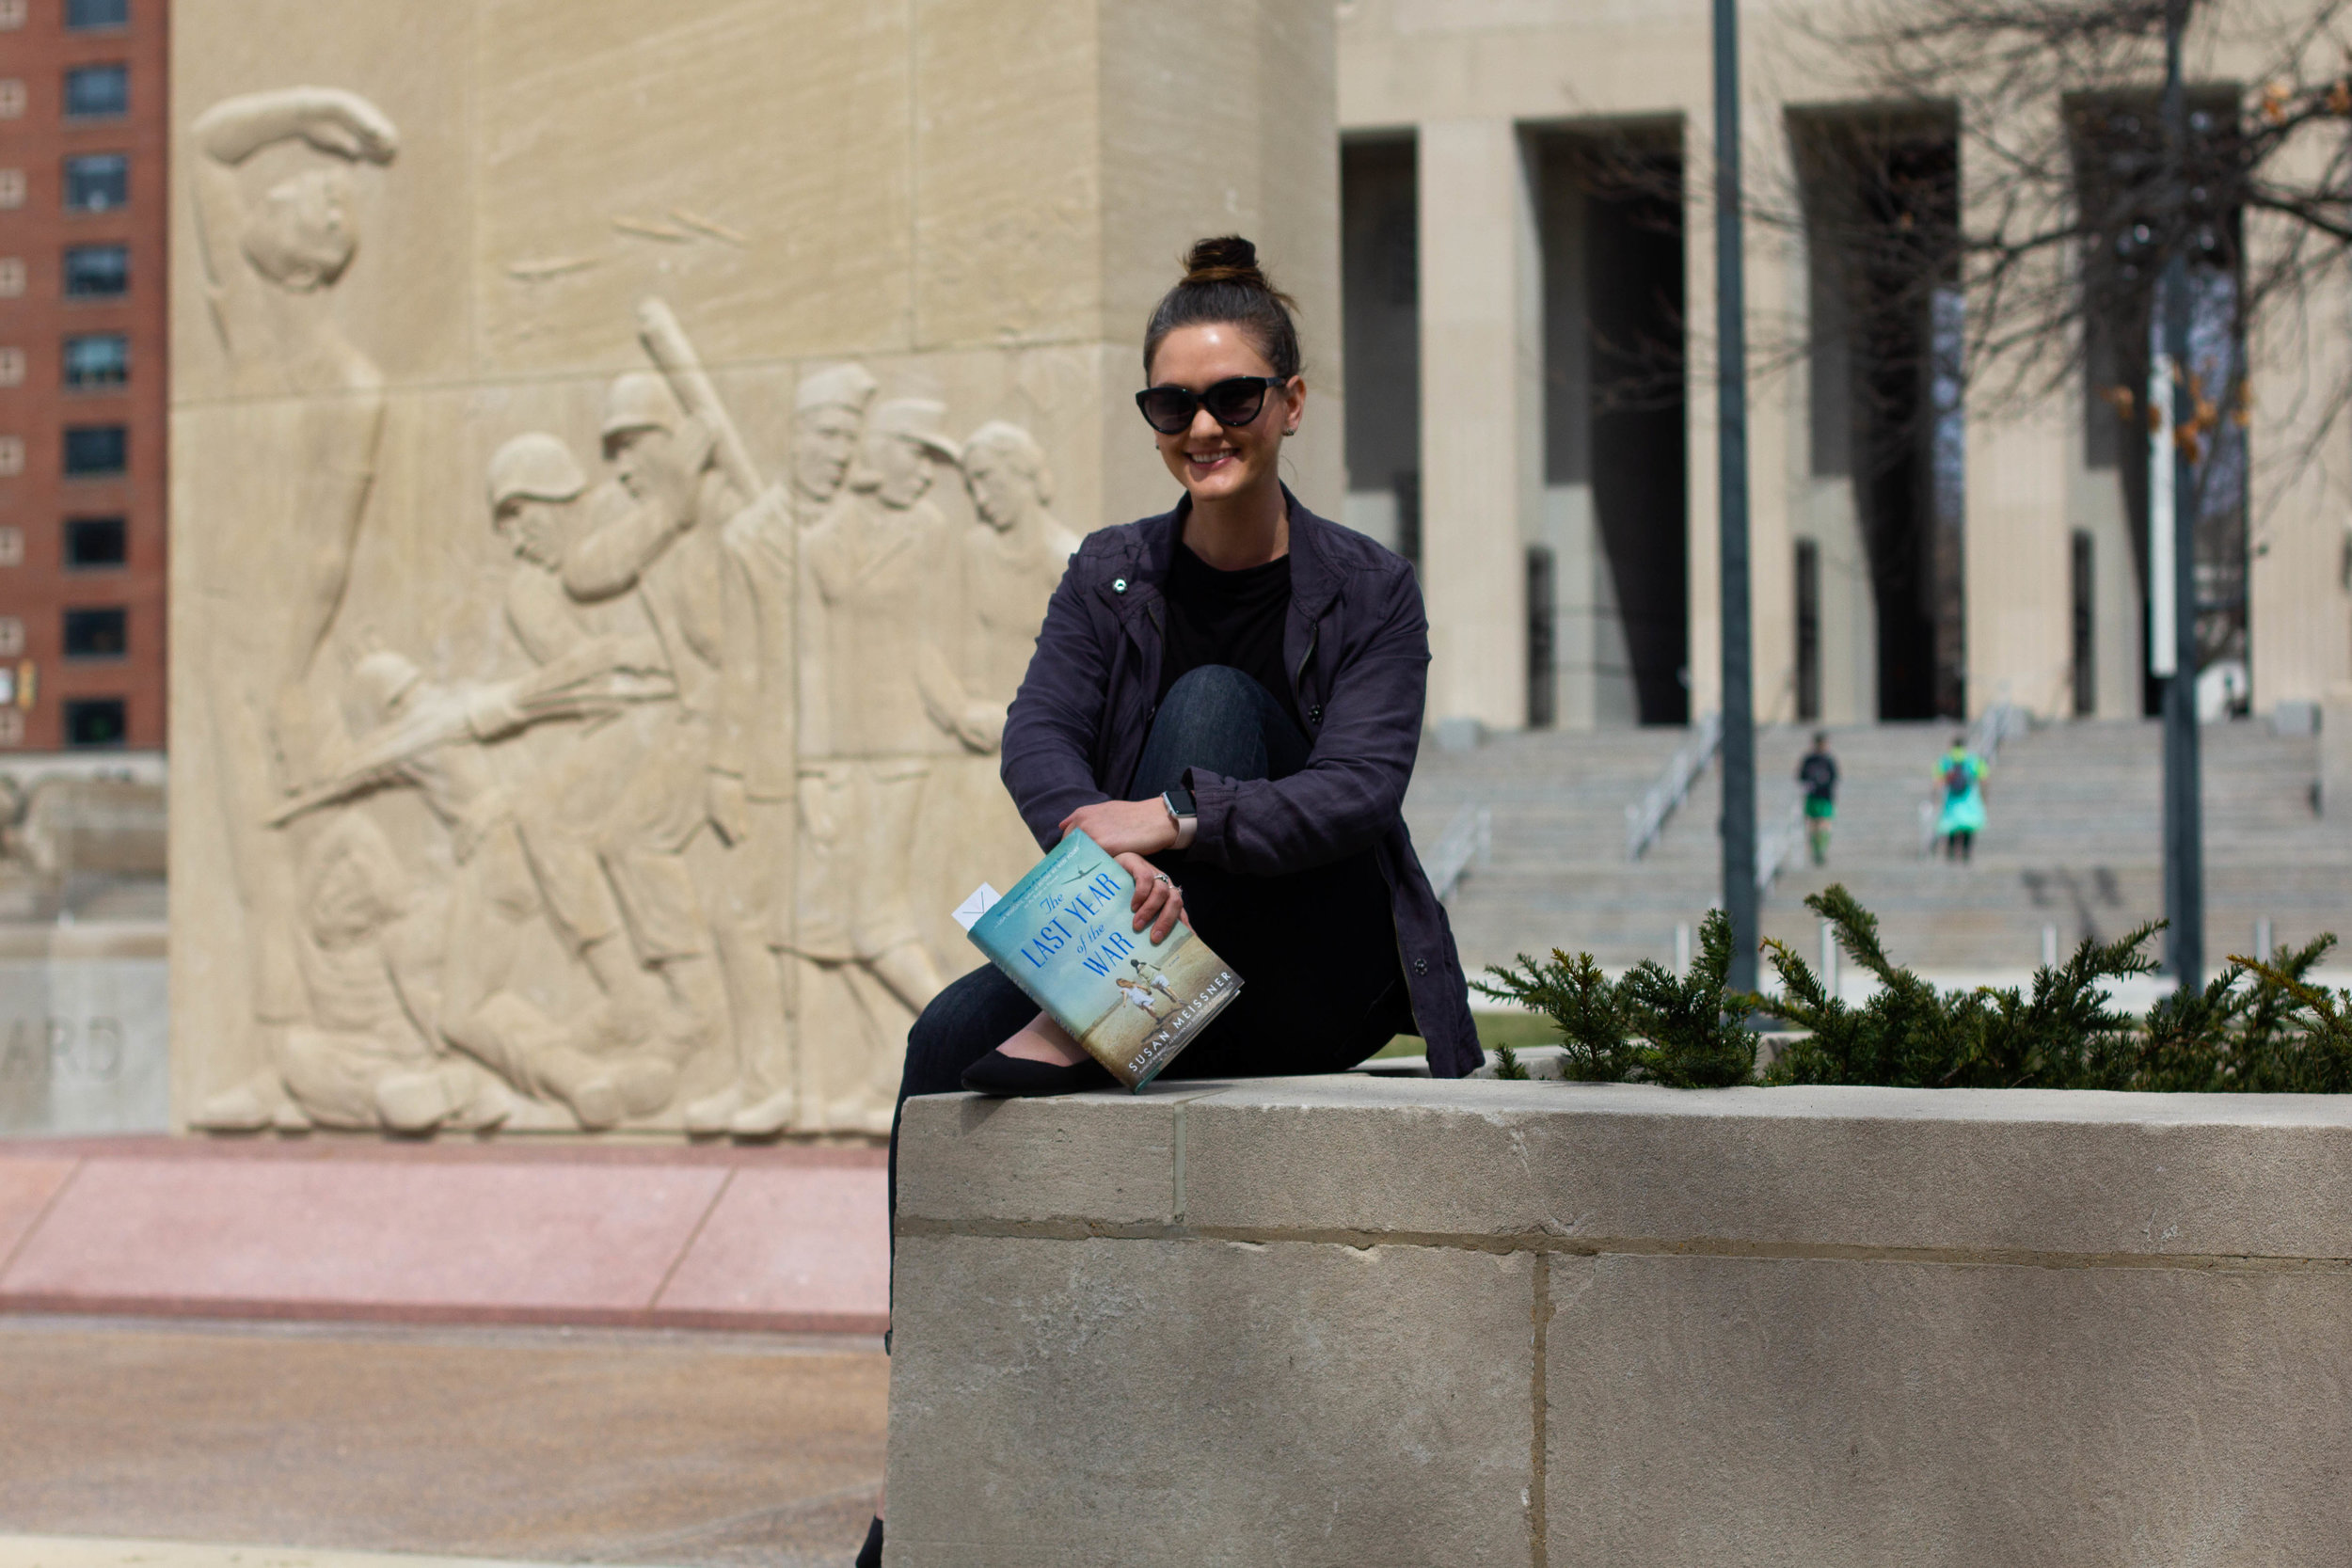 Reading The Last Year of the War by Susan Meissner at the Court of Honor, a monument in honor of WWII victims in St. Louis, MO